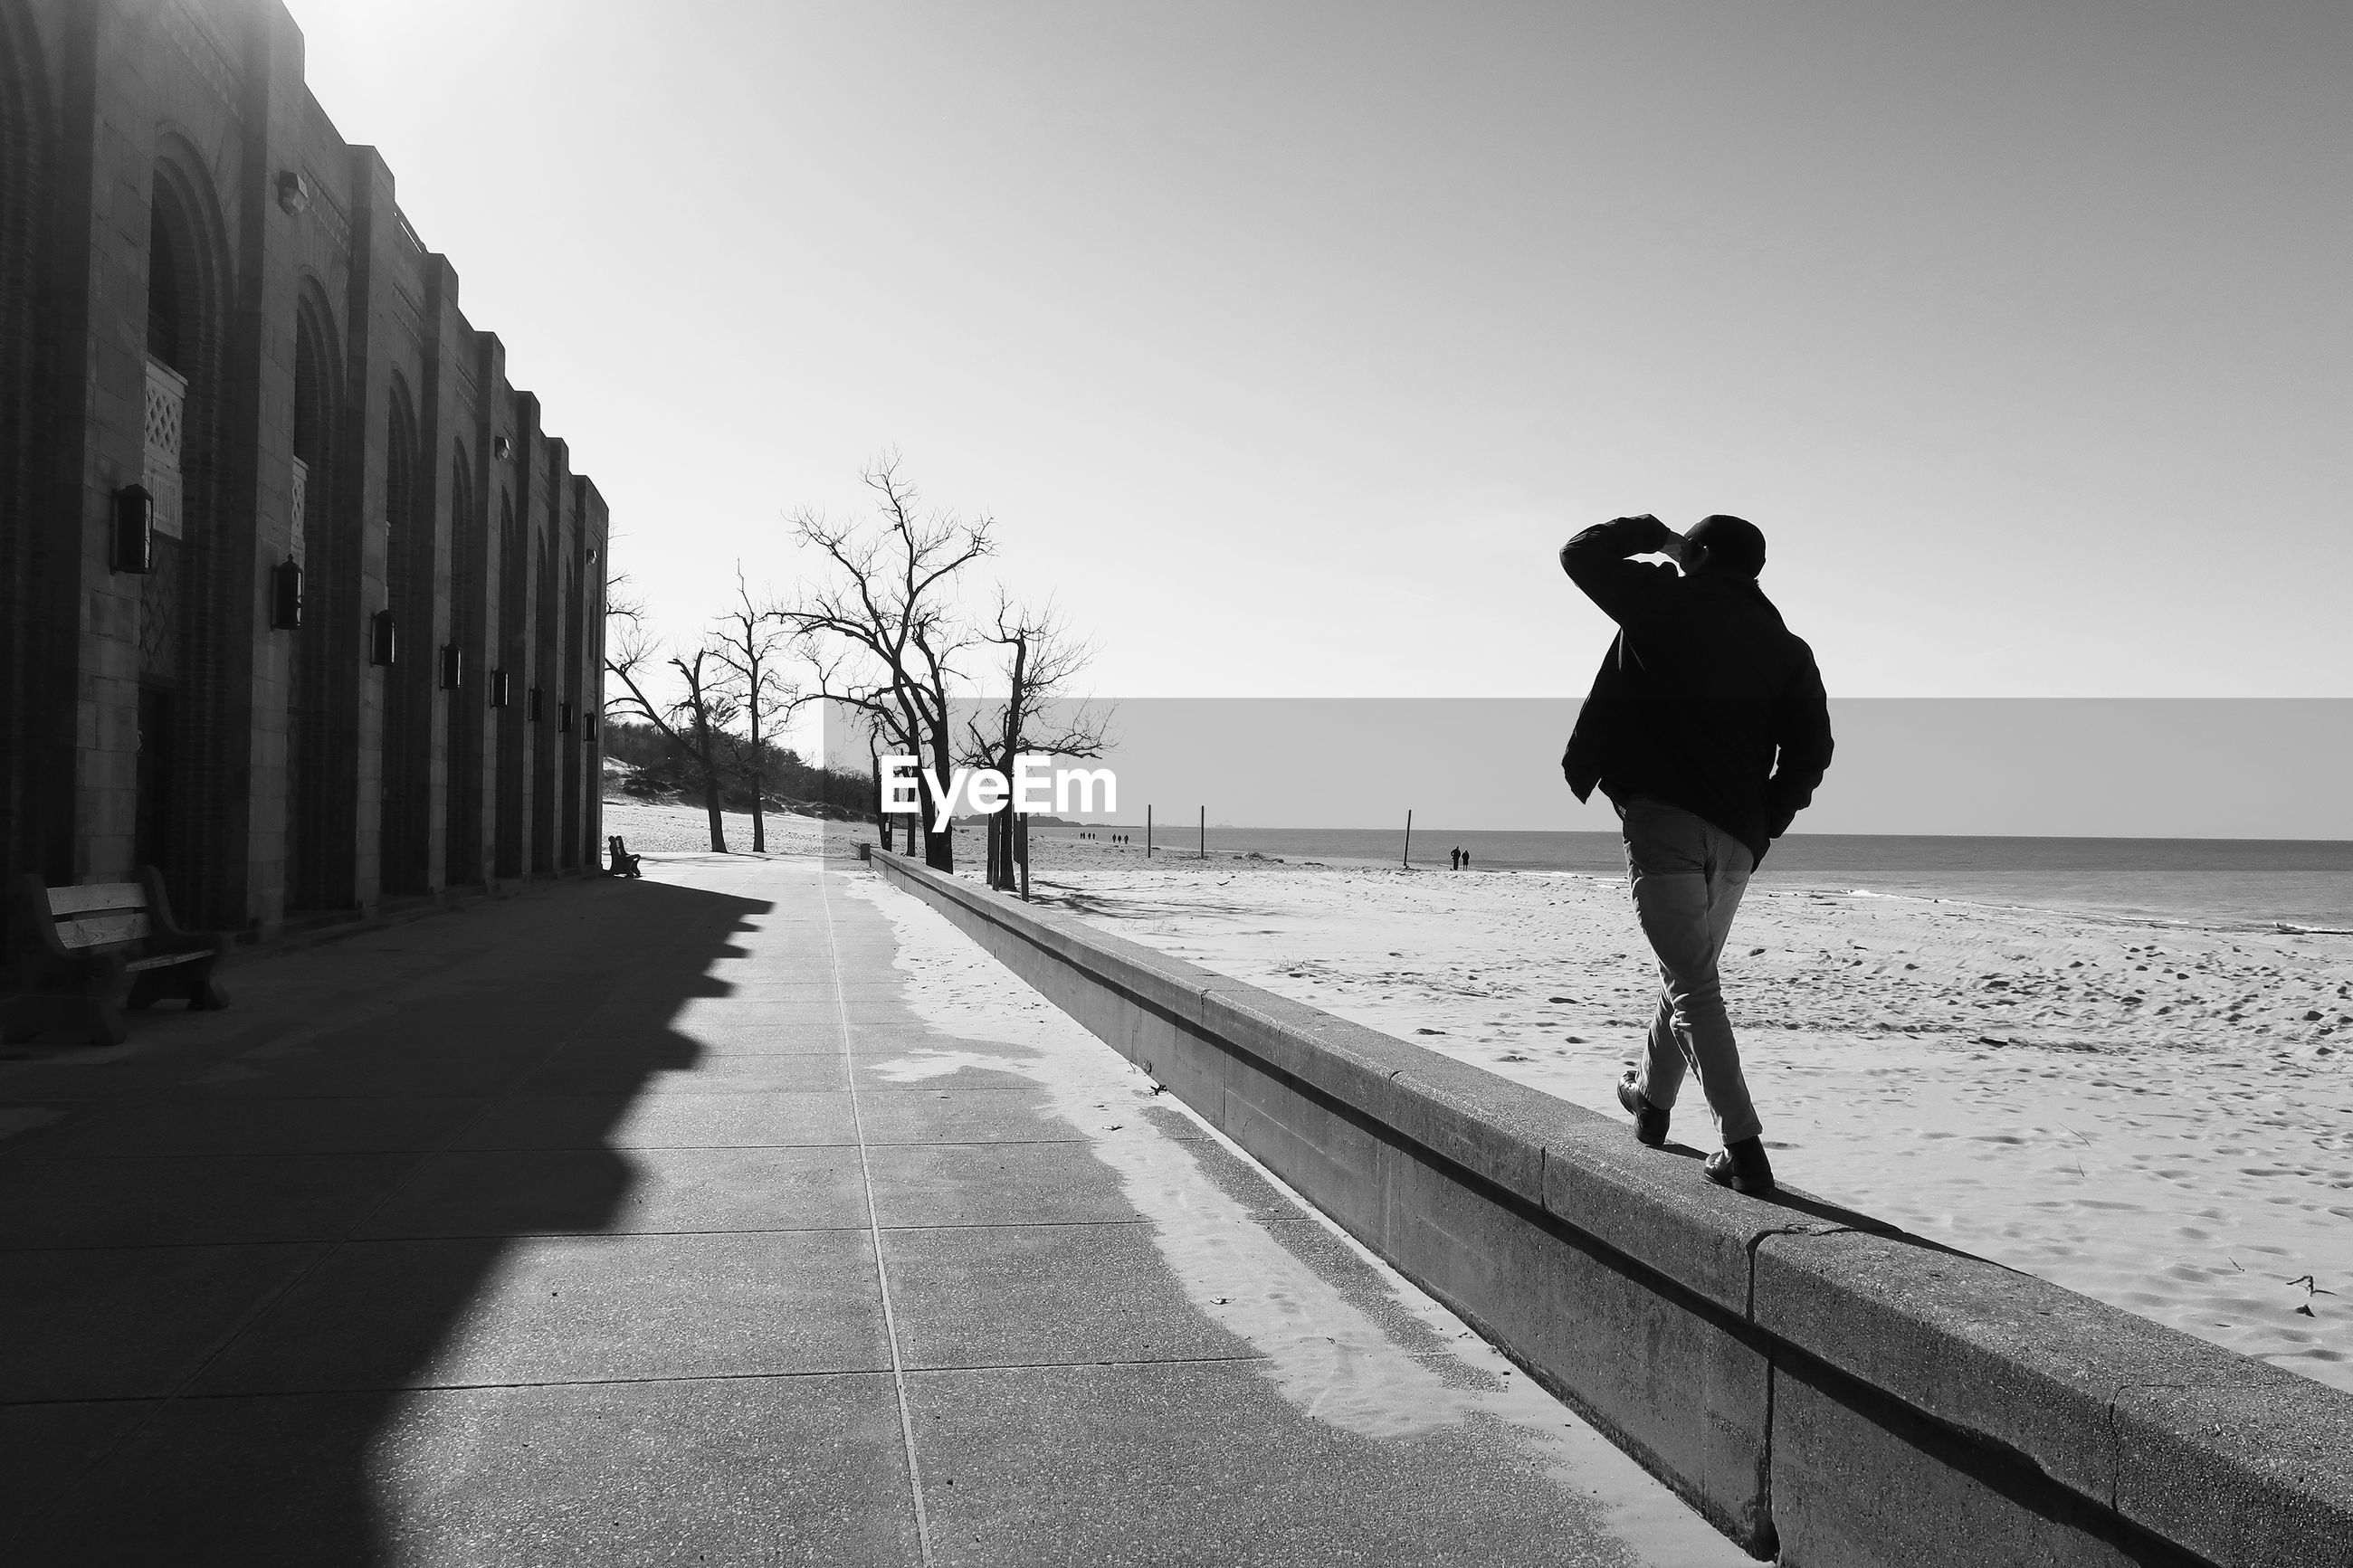 Rear view of man walking on retaining wall at beach against sky